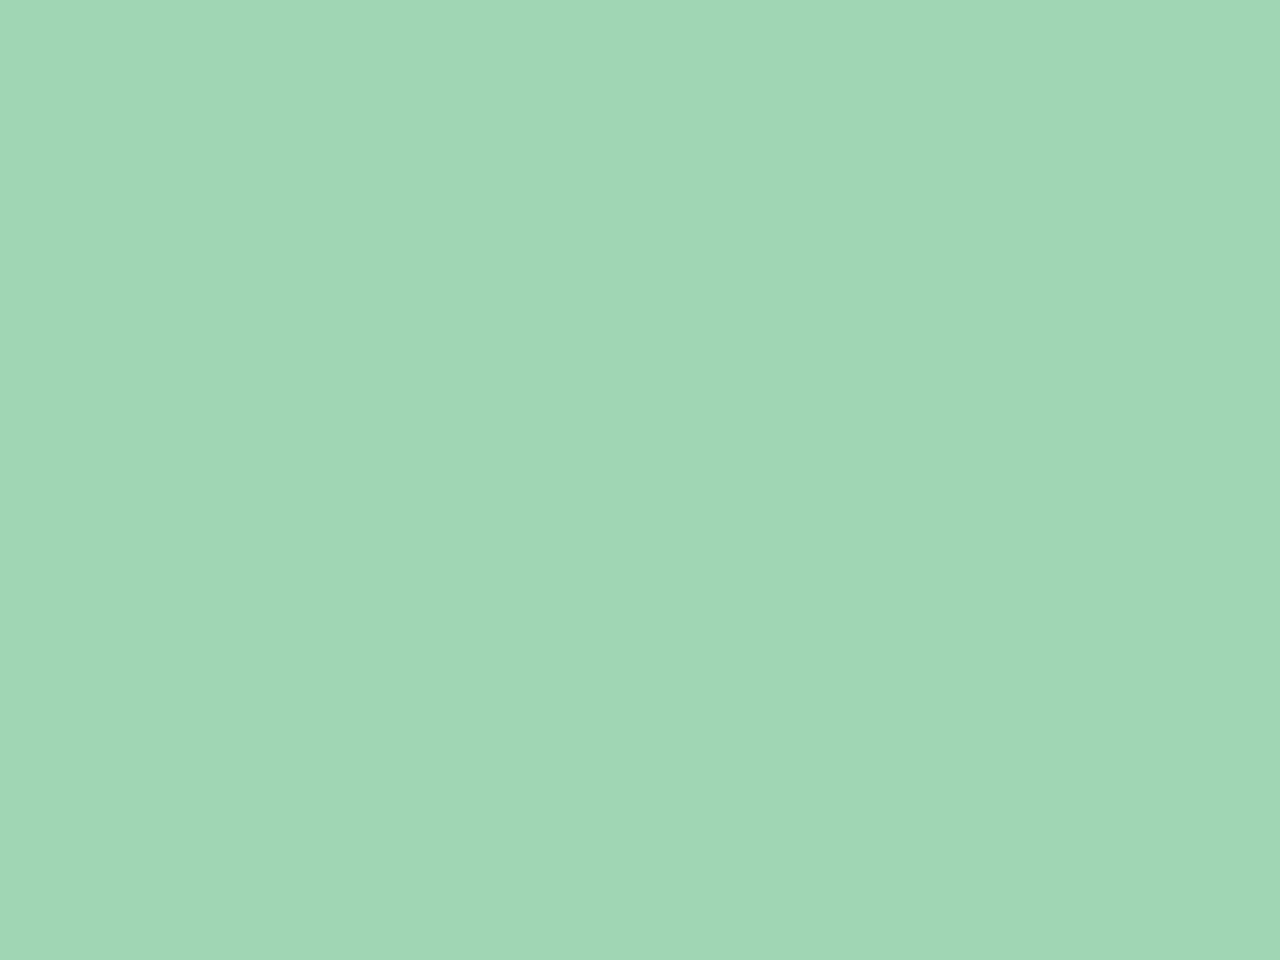 1280x960 Turquoise Green Solid Color Background